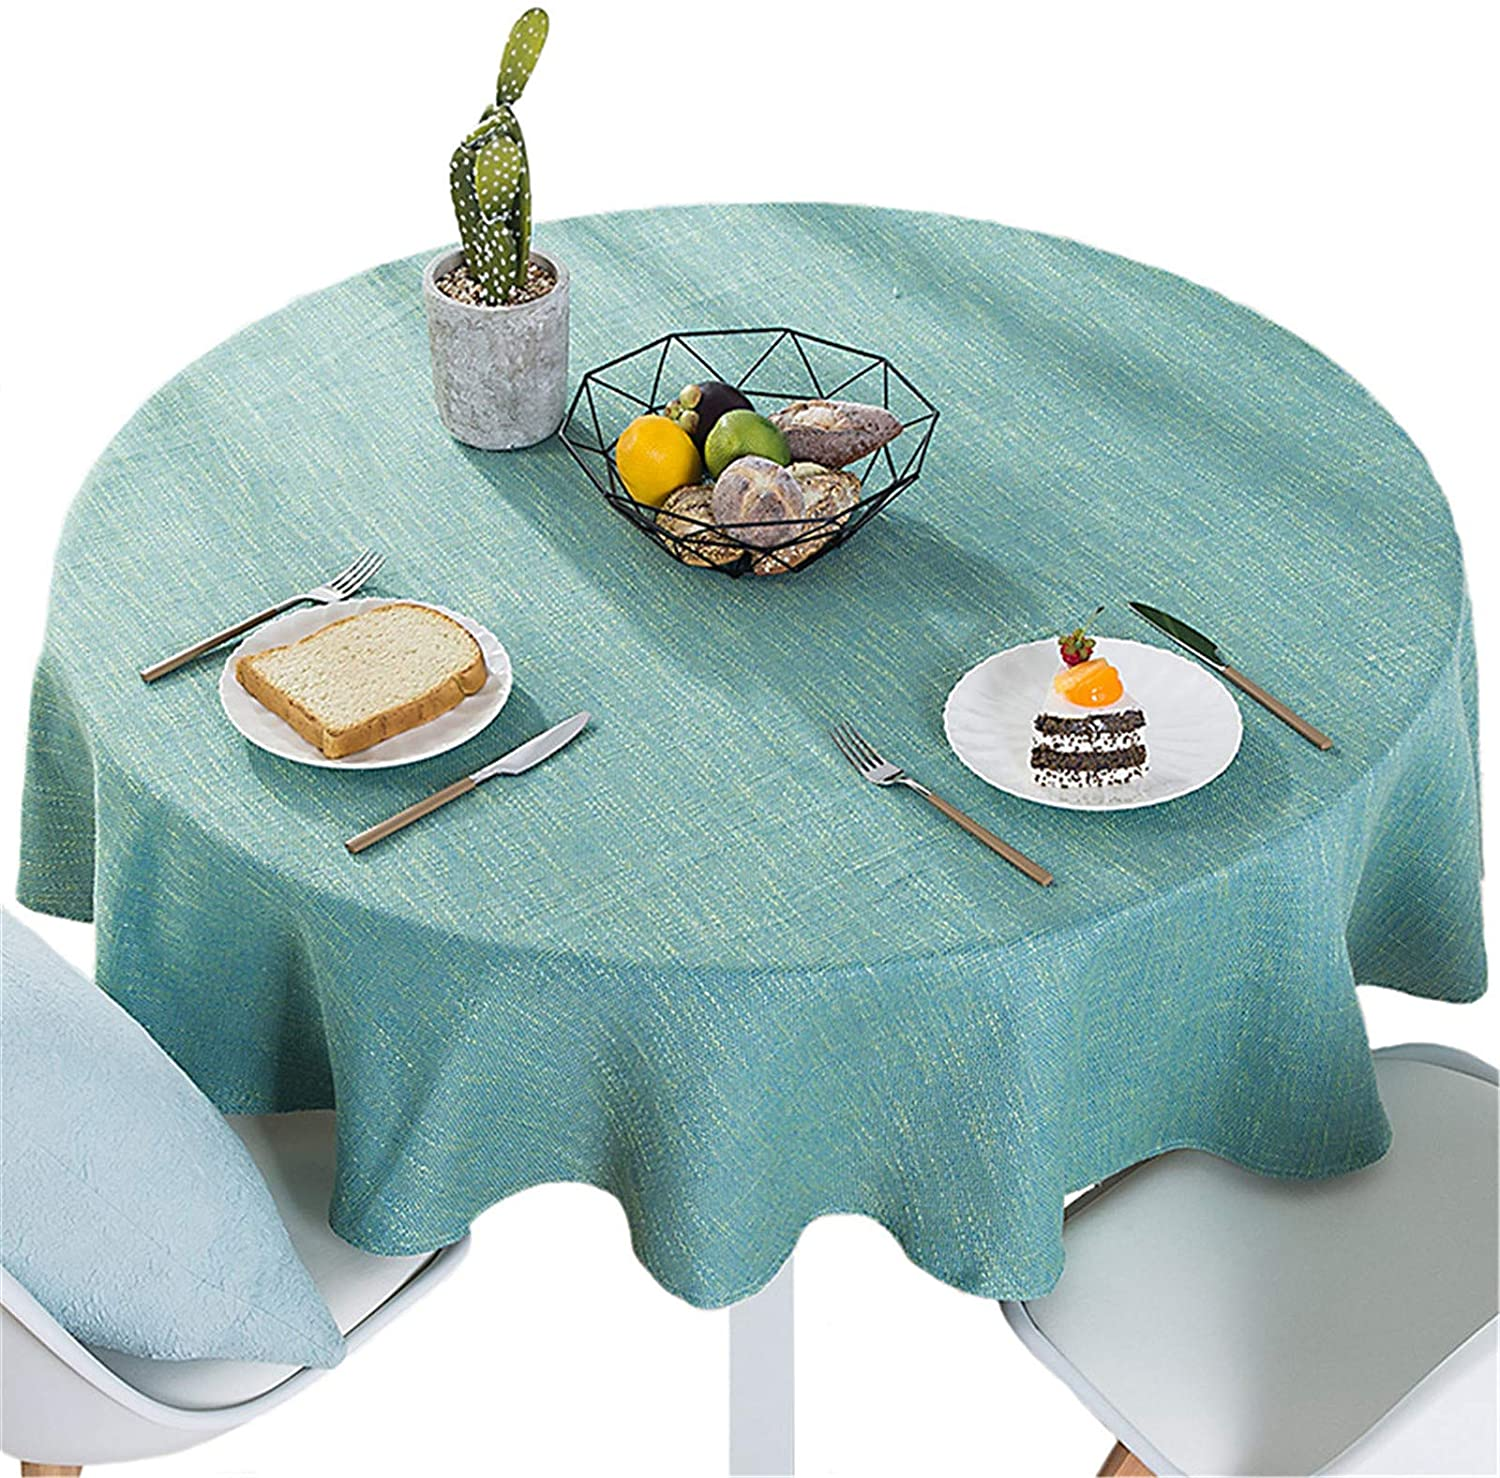 Bettery Home Cotton Linen Solid Color Tablecloth Round Simple Style Table Cover for Kitchen Dining Tabletop Linen Decor (Green, Round - 55 Inch)